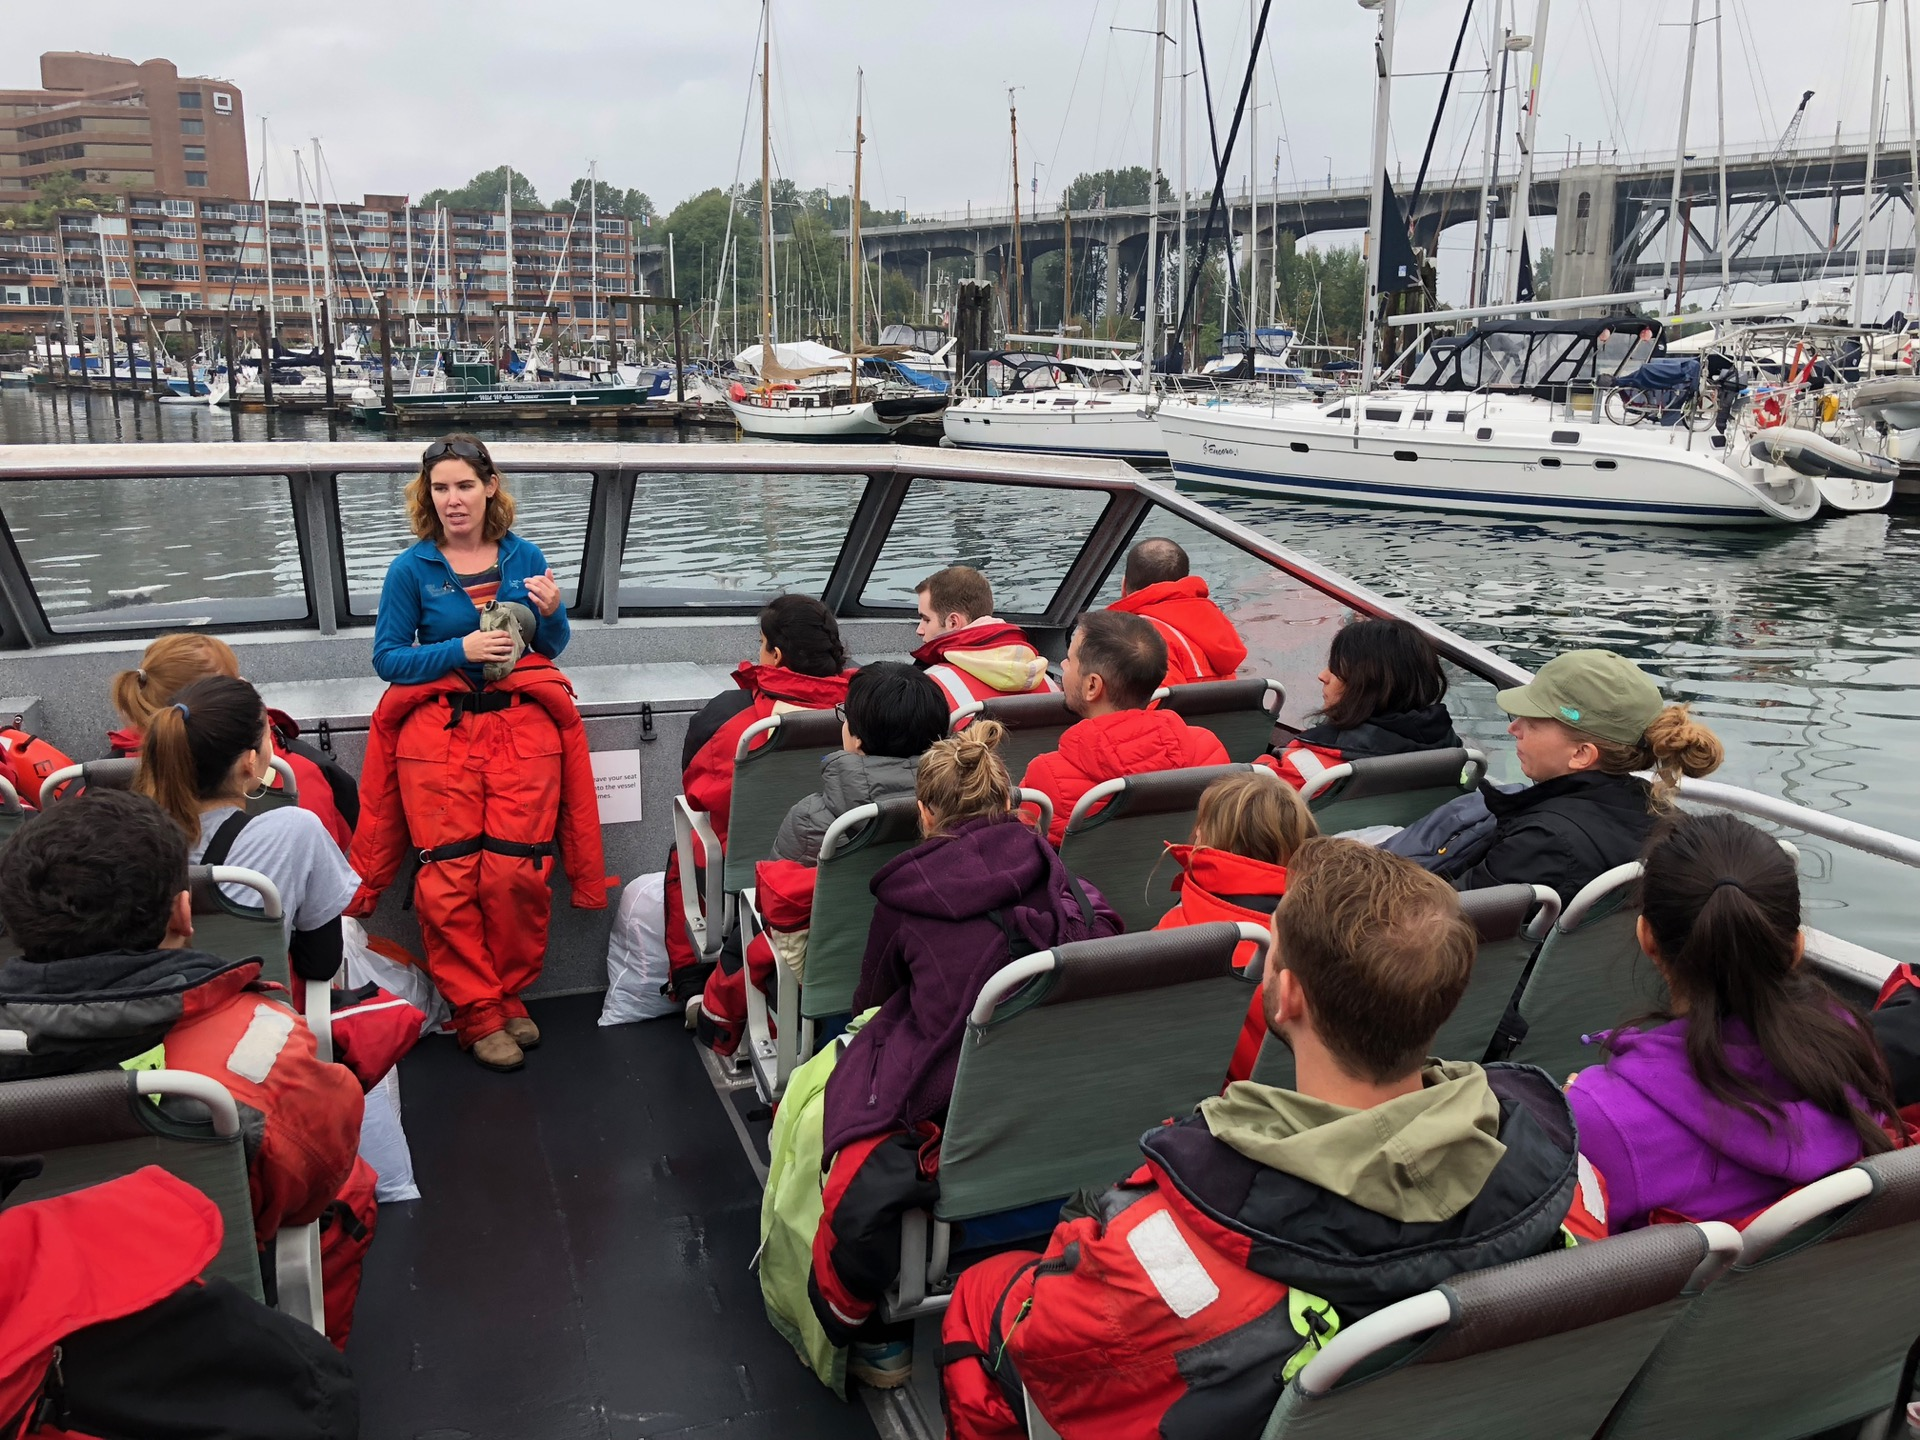 Our briefing as were were about to head out on a grey, overcast morning.